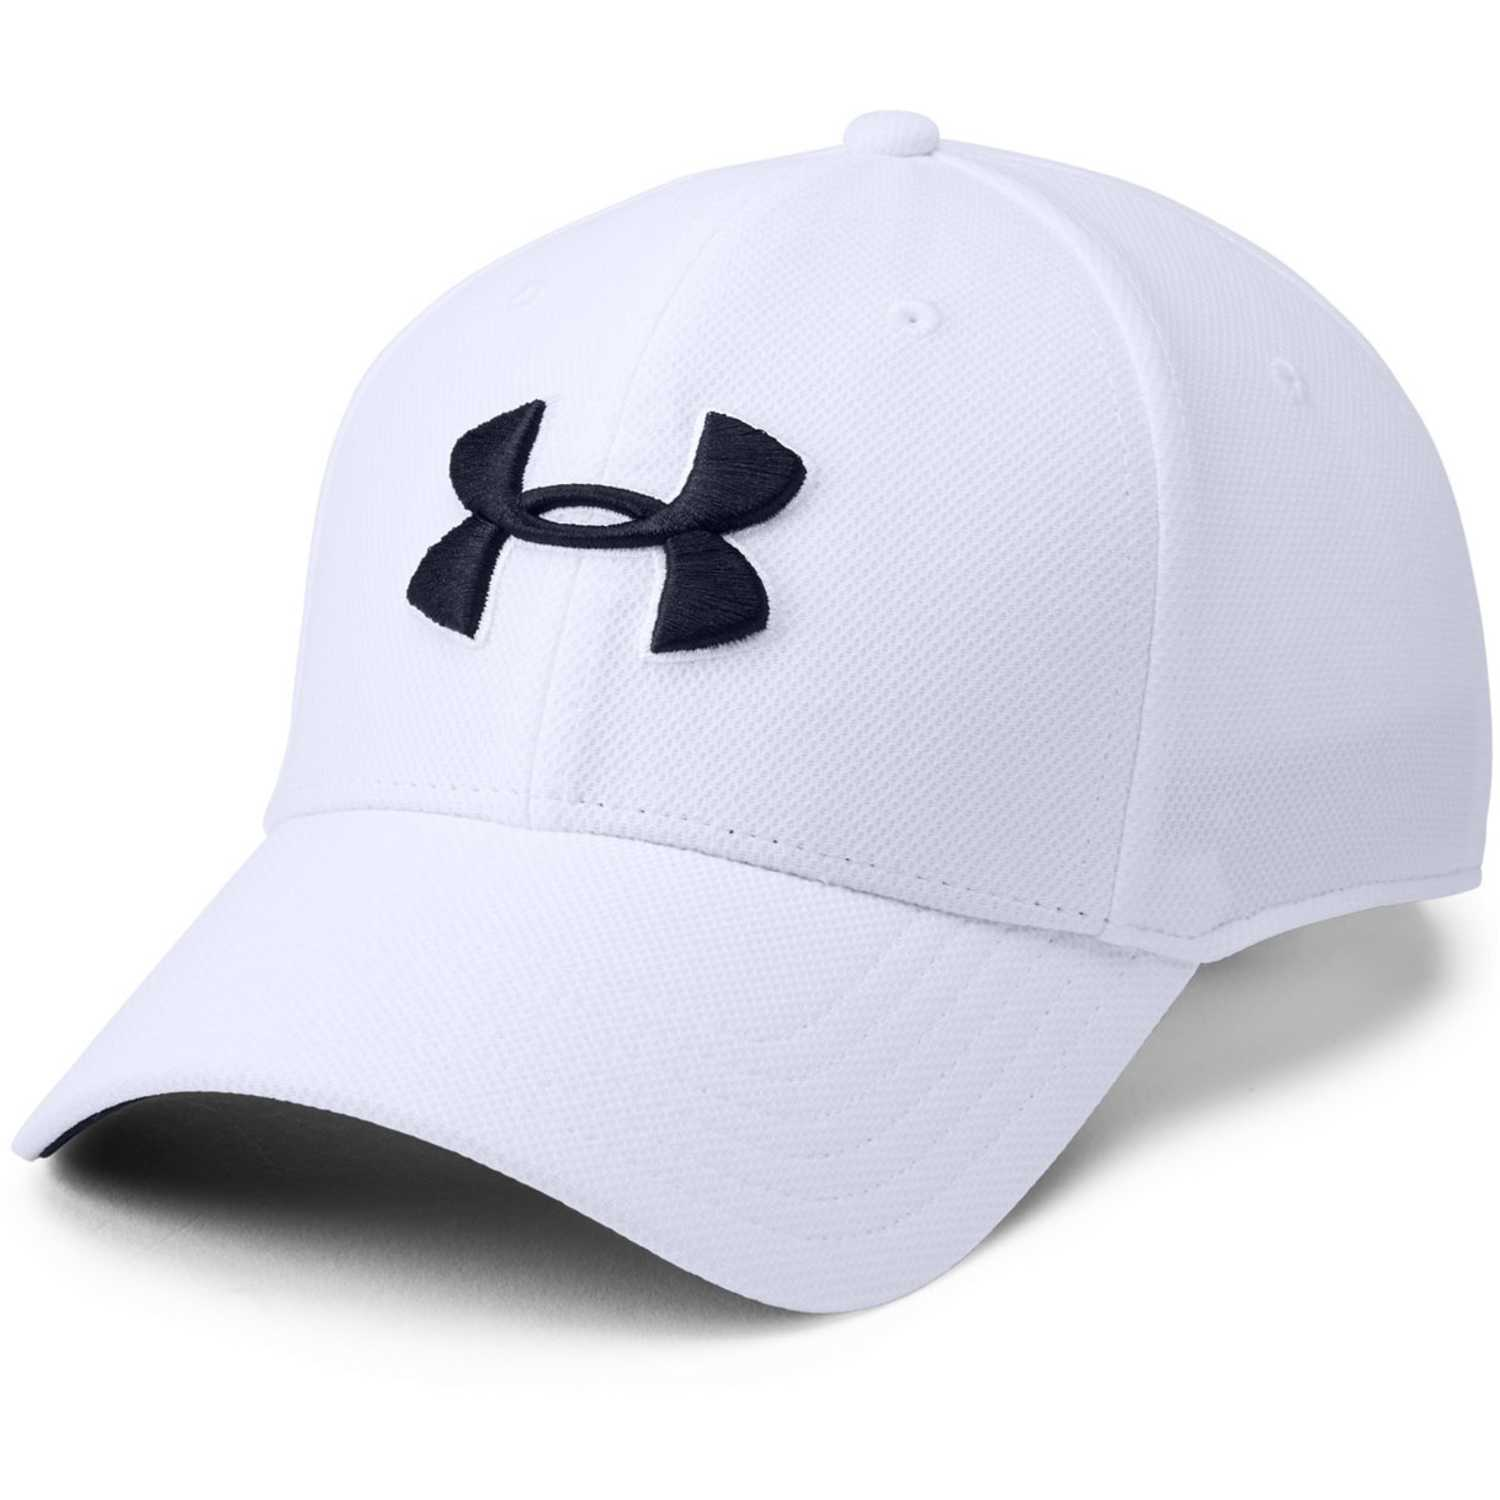 Gorro de Hombre Under Armour Blanco men s blitzing 3.0 cap-wht ... d6b457825b2